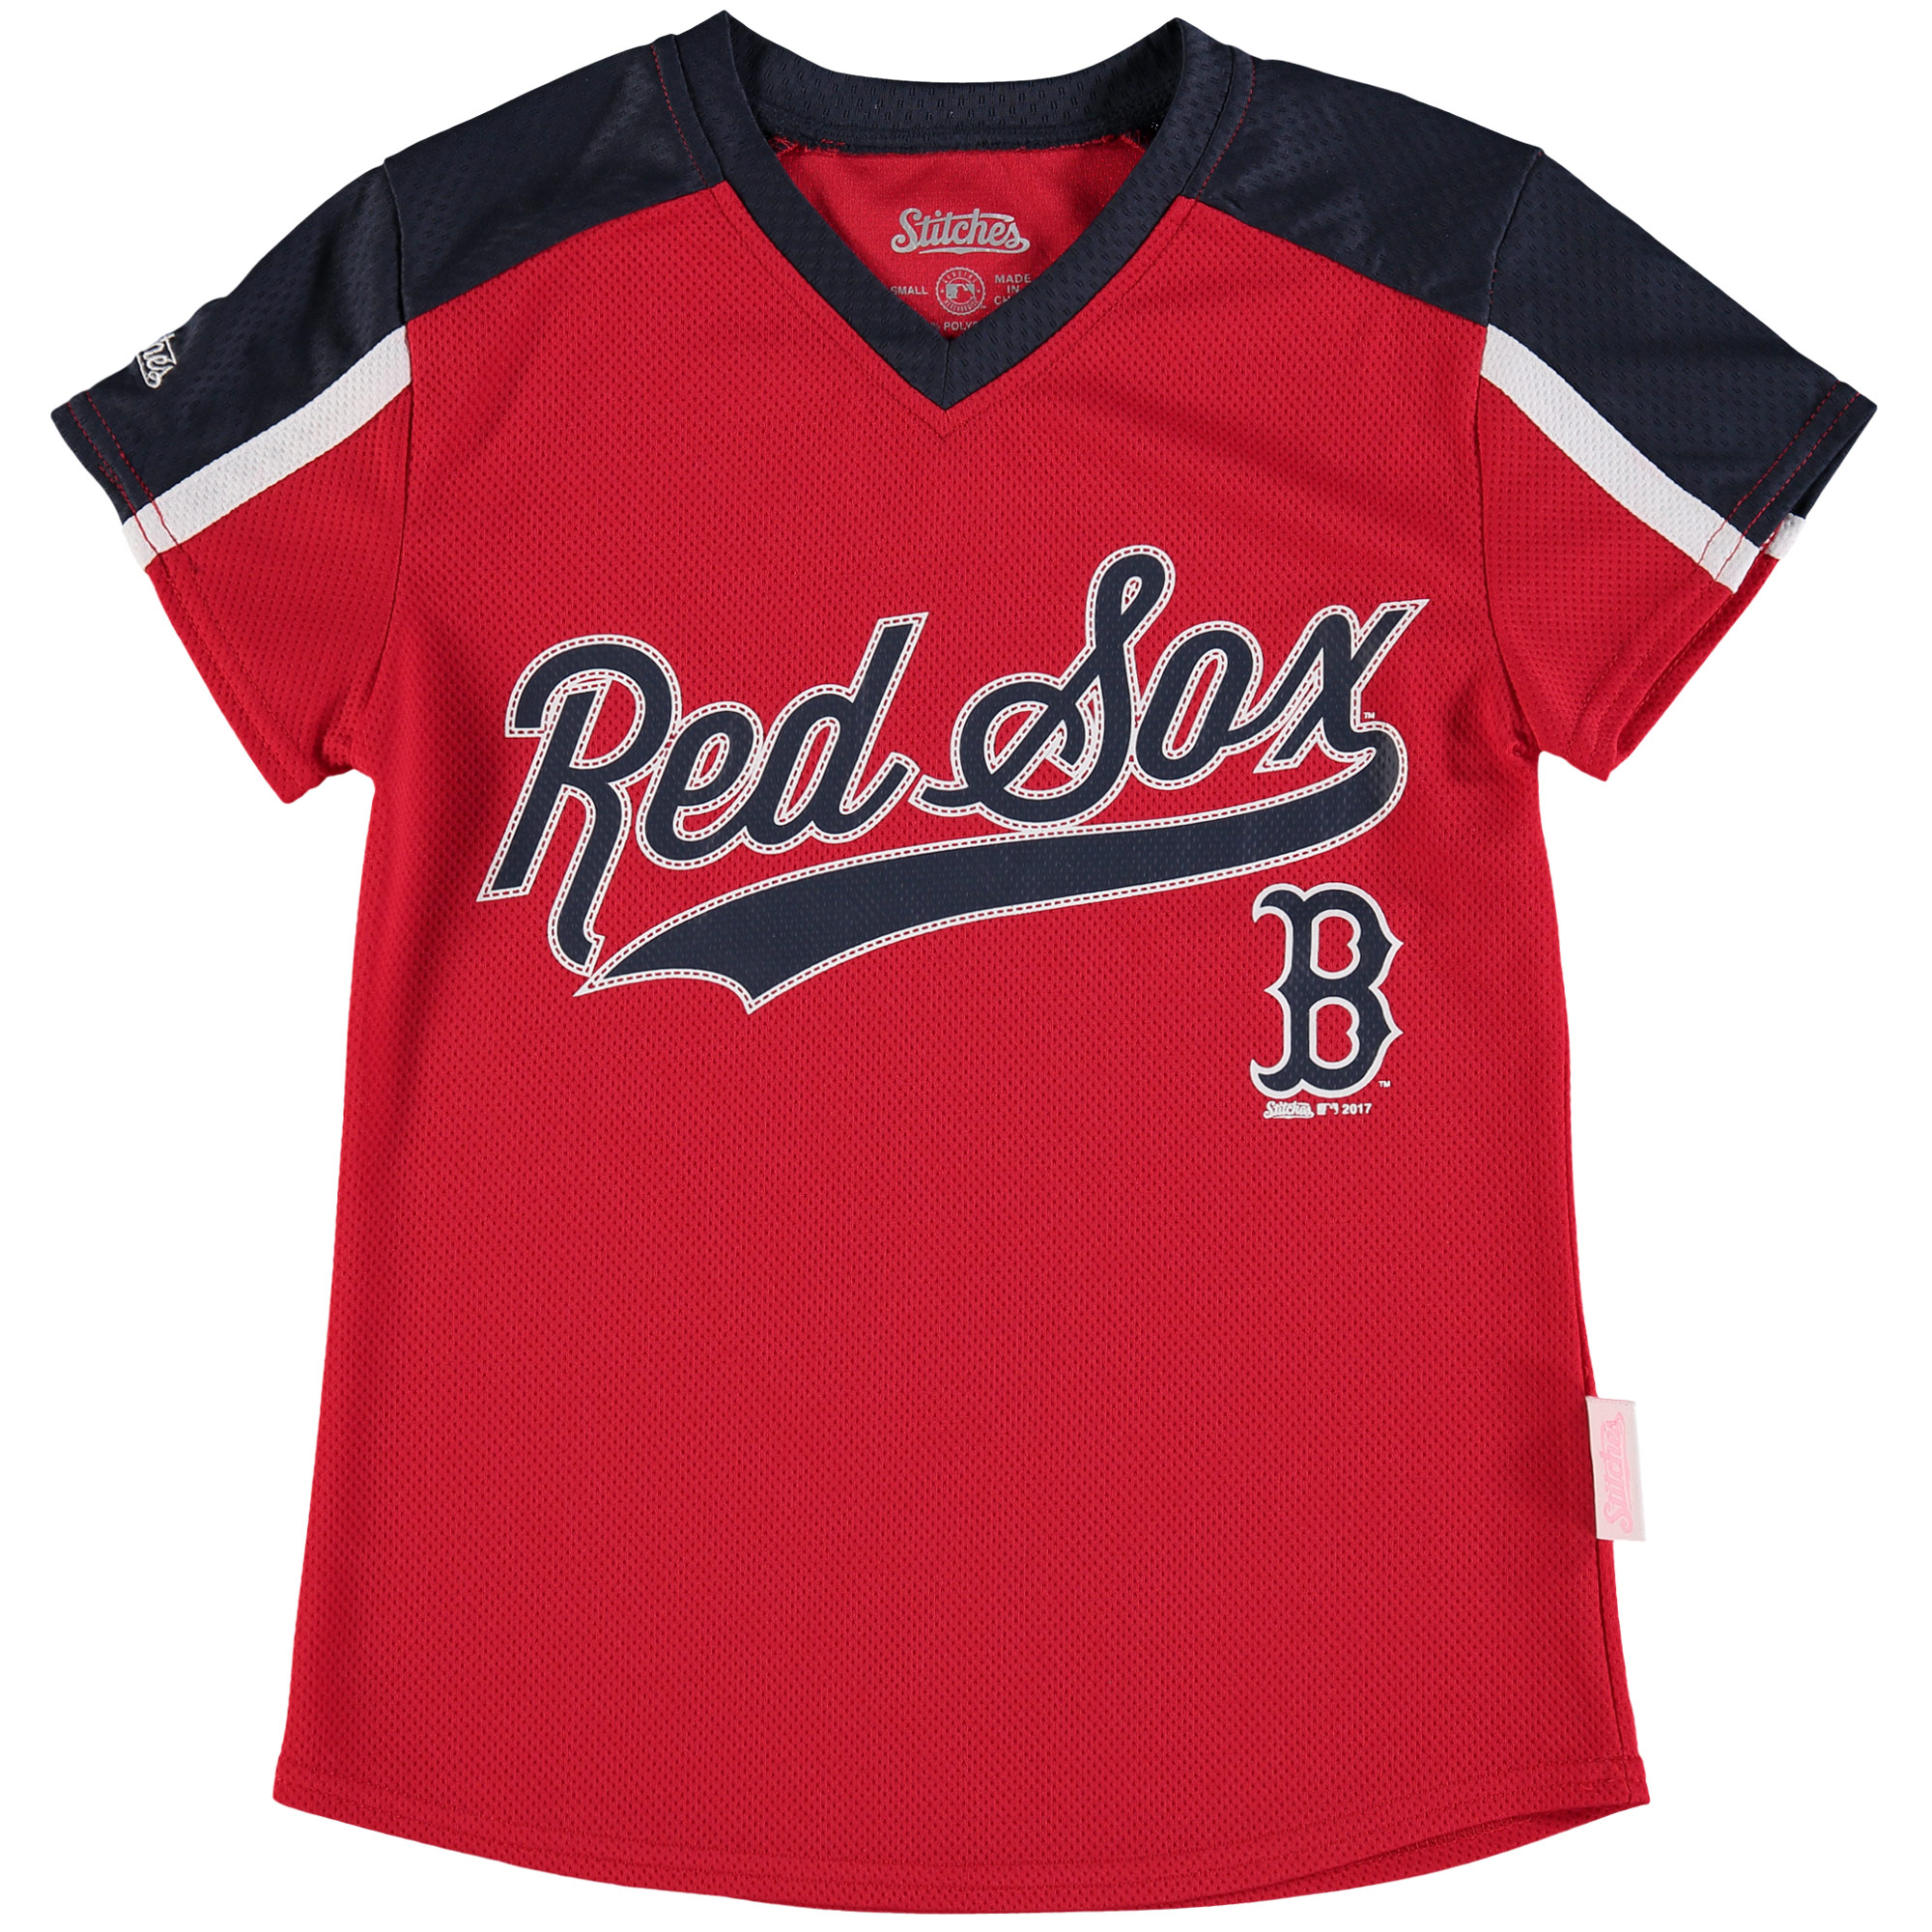 Boston Red Sox Stitches Girls Youth V-Neck Jersey T-Shirt - Red/Navy